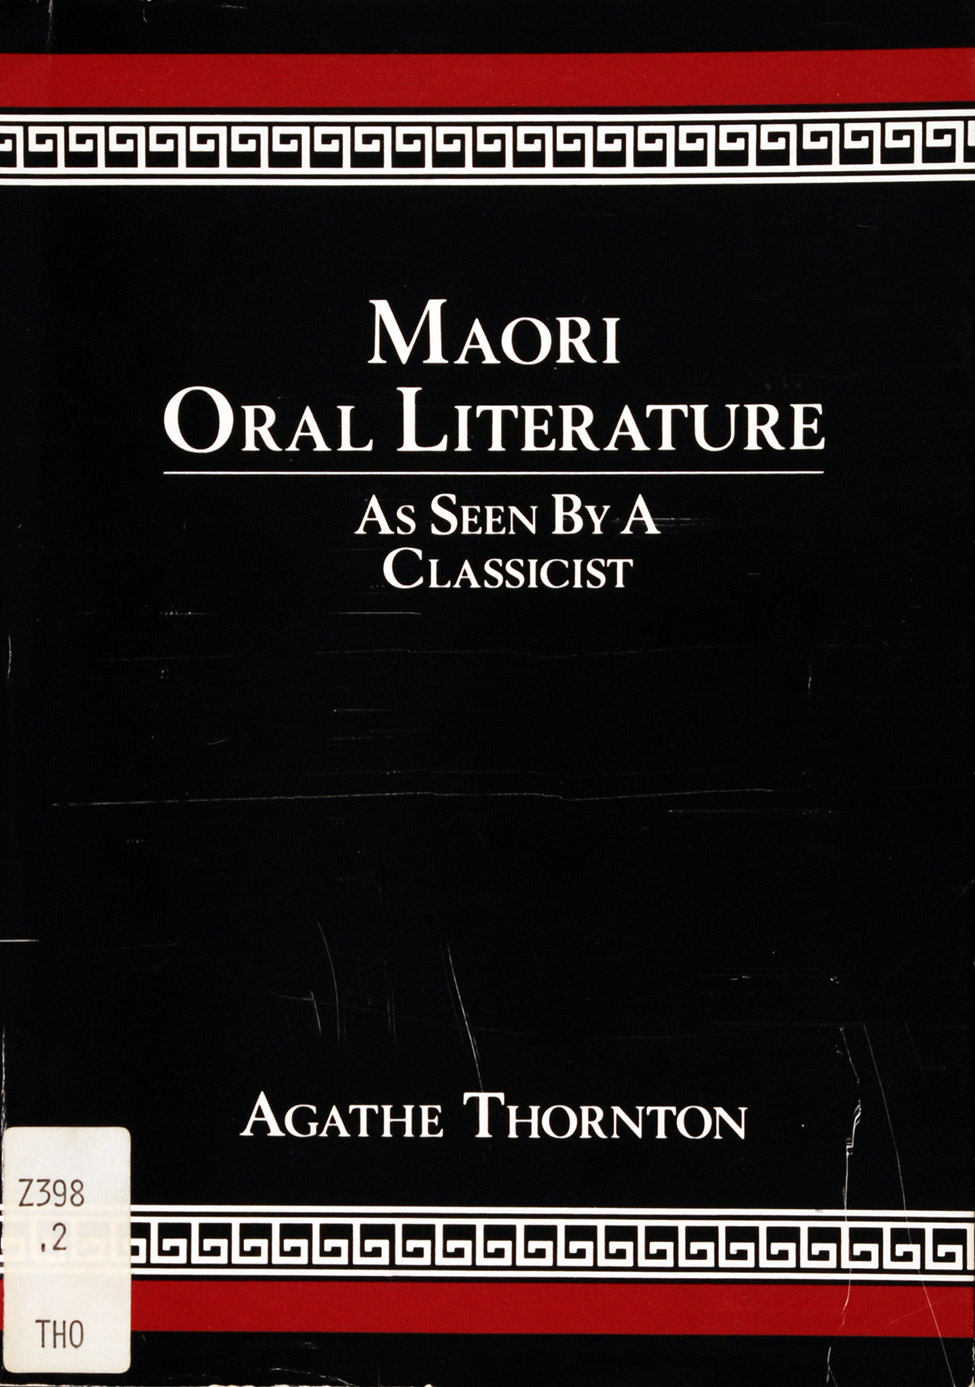 Agathe Thornton. <i>Maori Oral Literature: As Seen by a Classicist. </i> Dunedin: University of Otago Press, 1987.